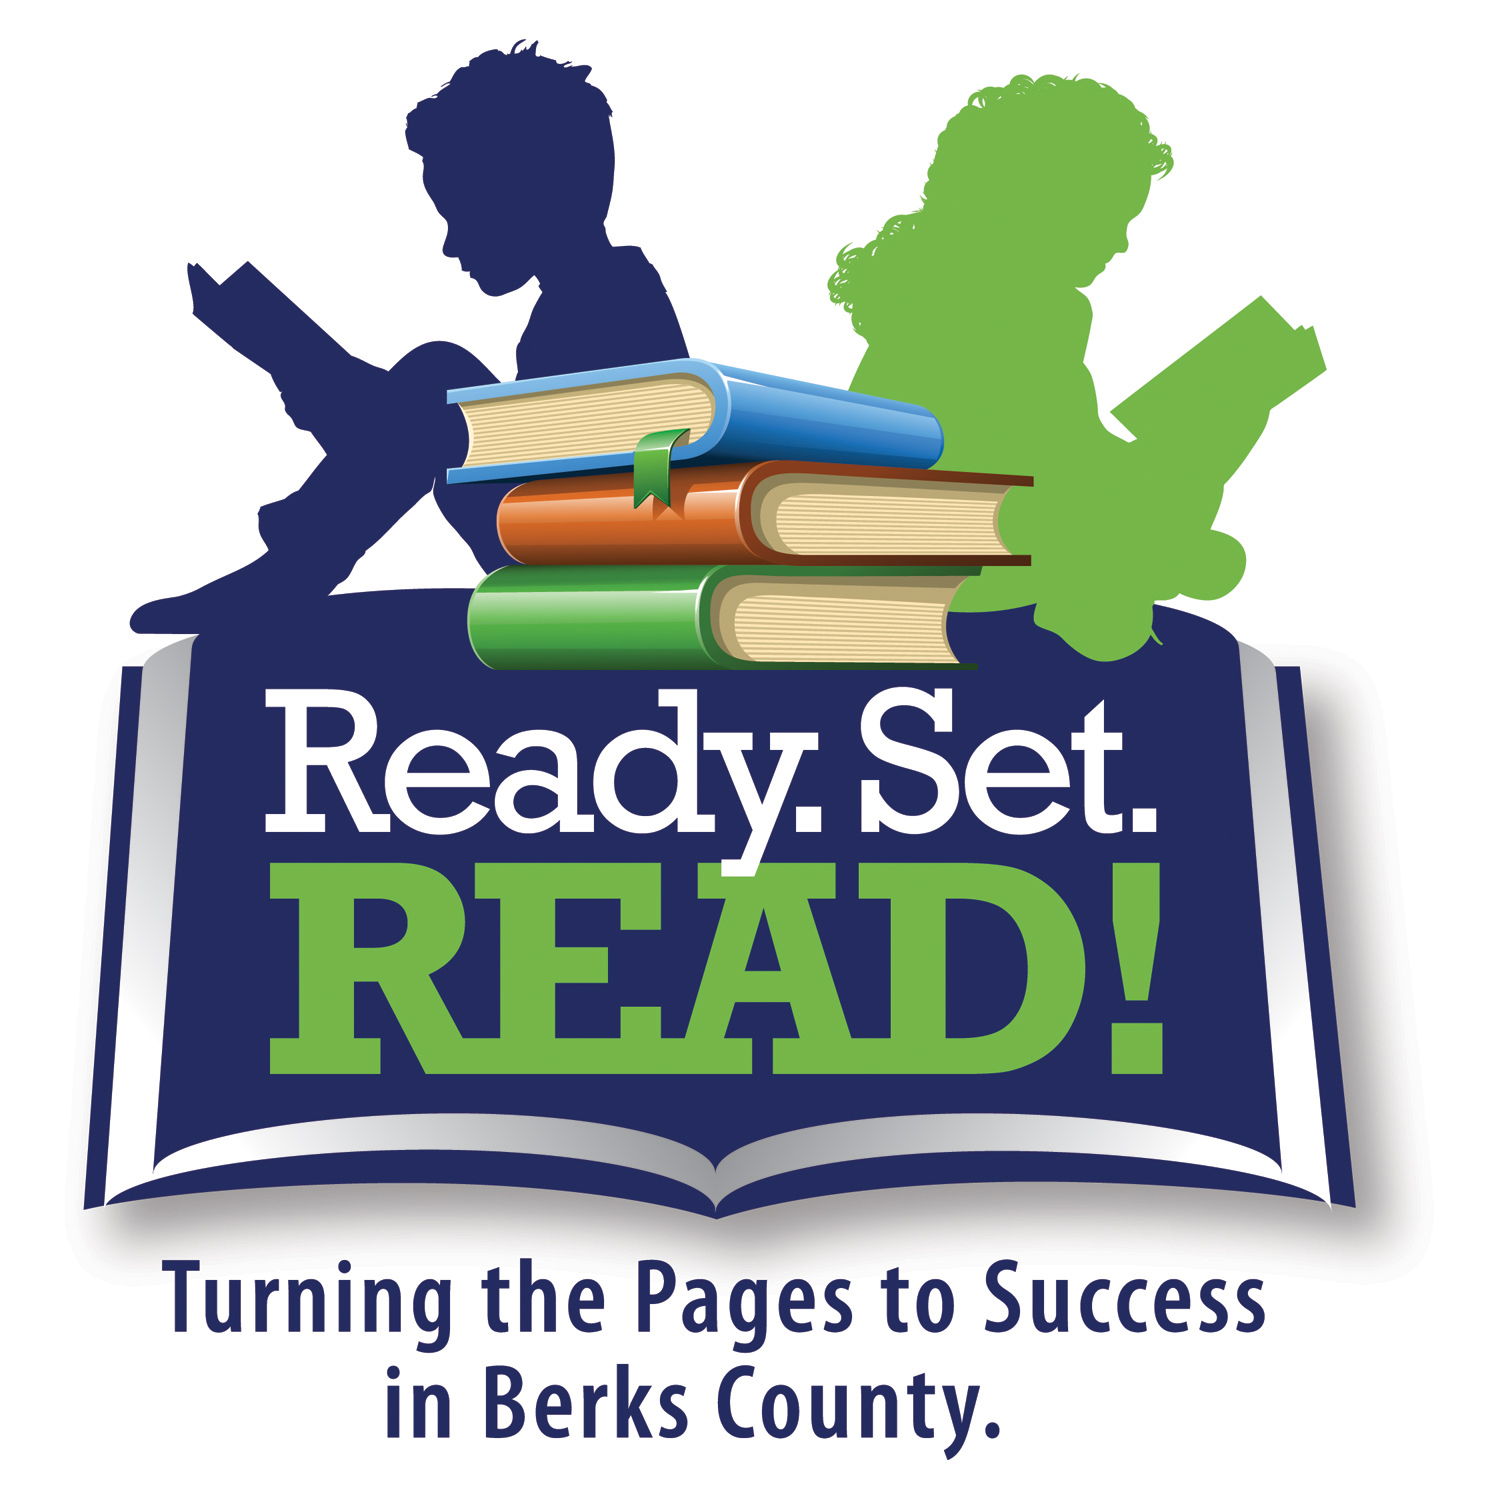 Ready.Set.READ! logo